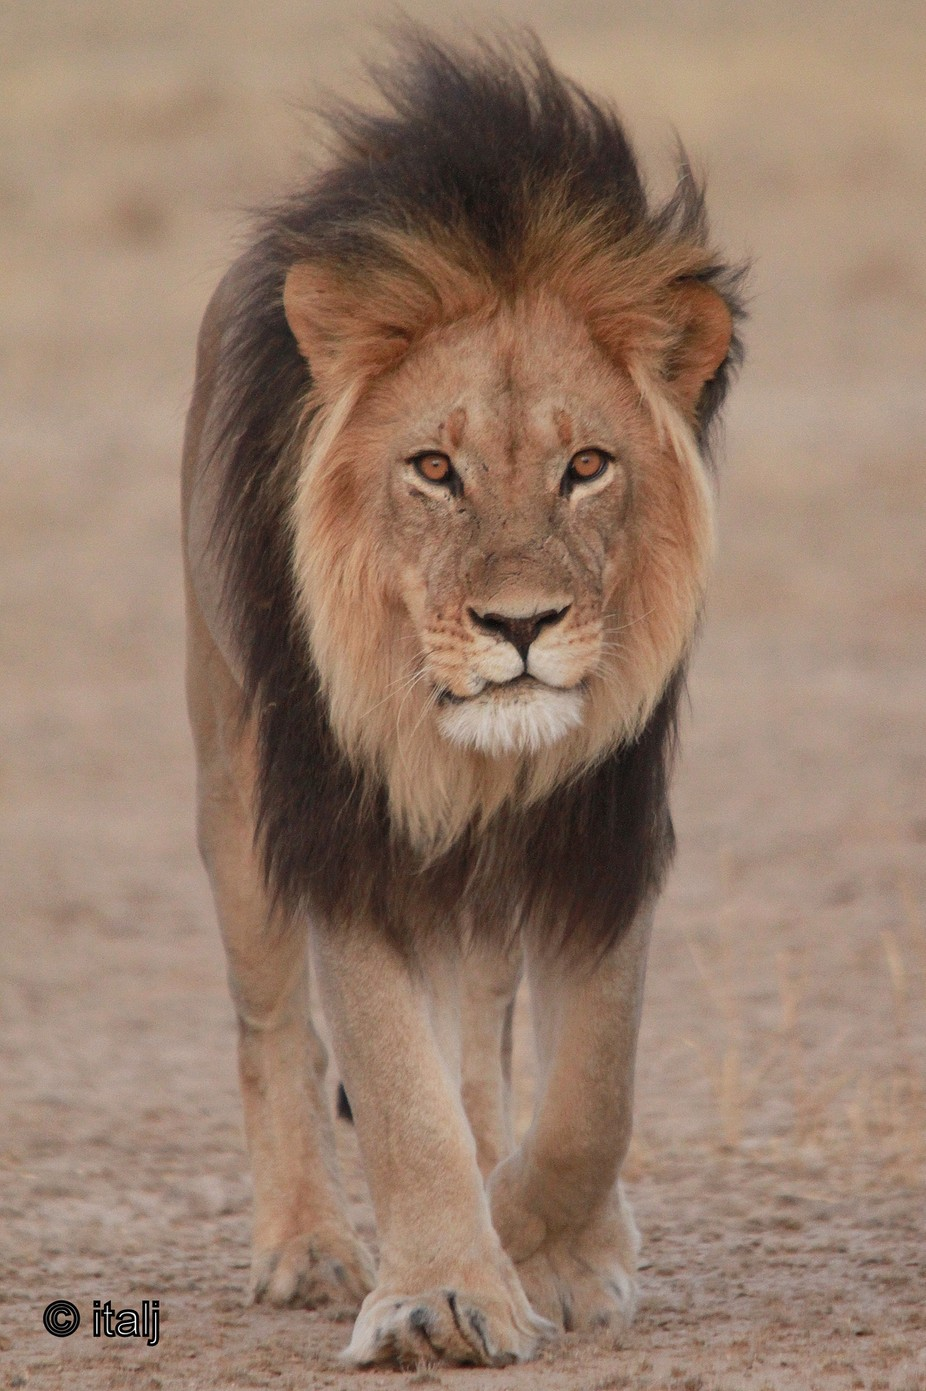 Lion on a mission by italj - Monthly Pro Photo Contest Vol 44